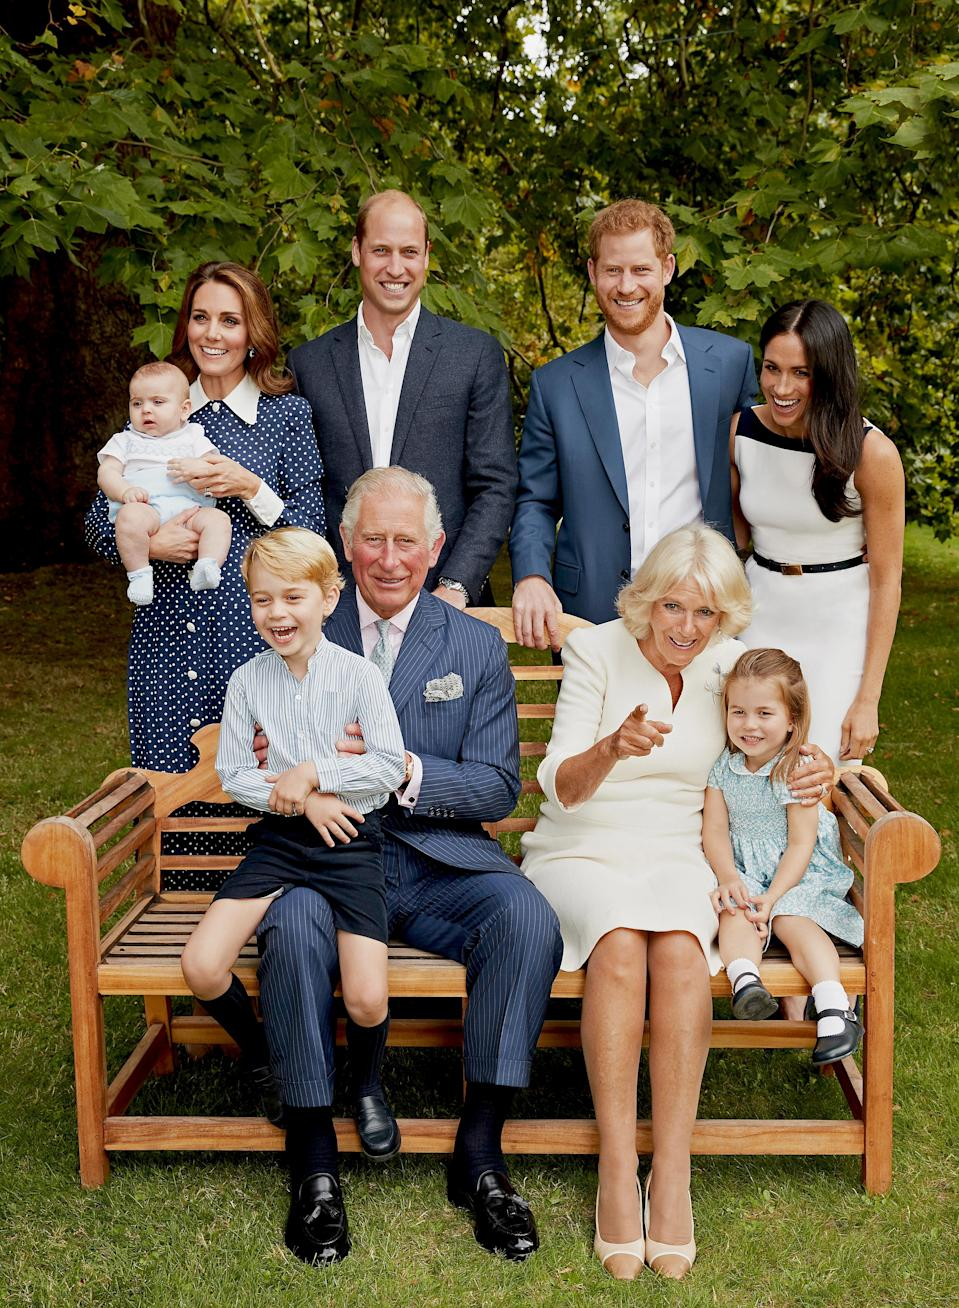 The photos shows Prince Charles and his wife, Camilla, the Duchess of Cornwall, sitting on a bench, surrounded by their family. Photo: Getty Images